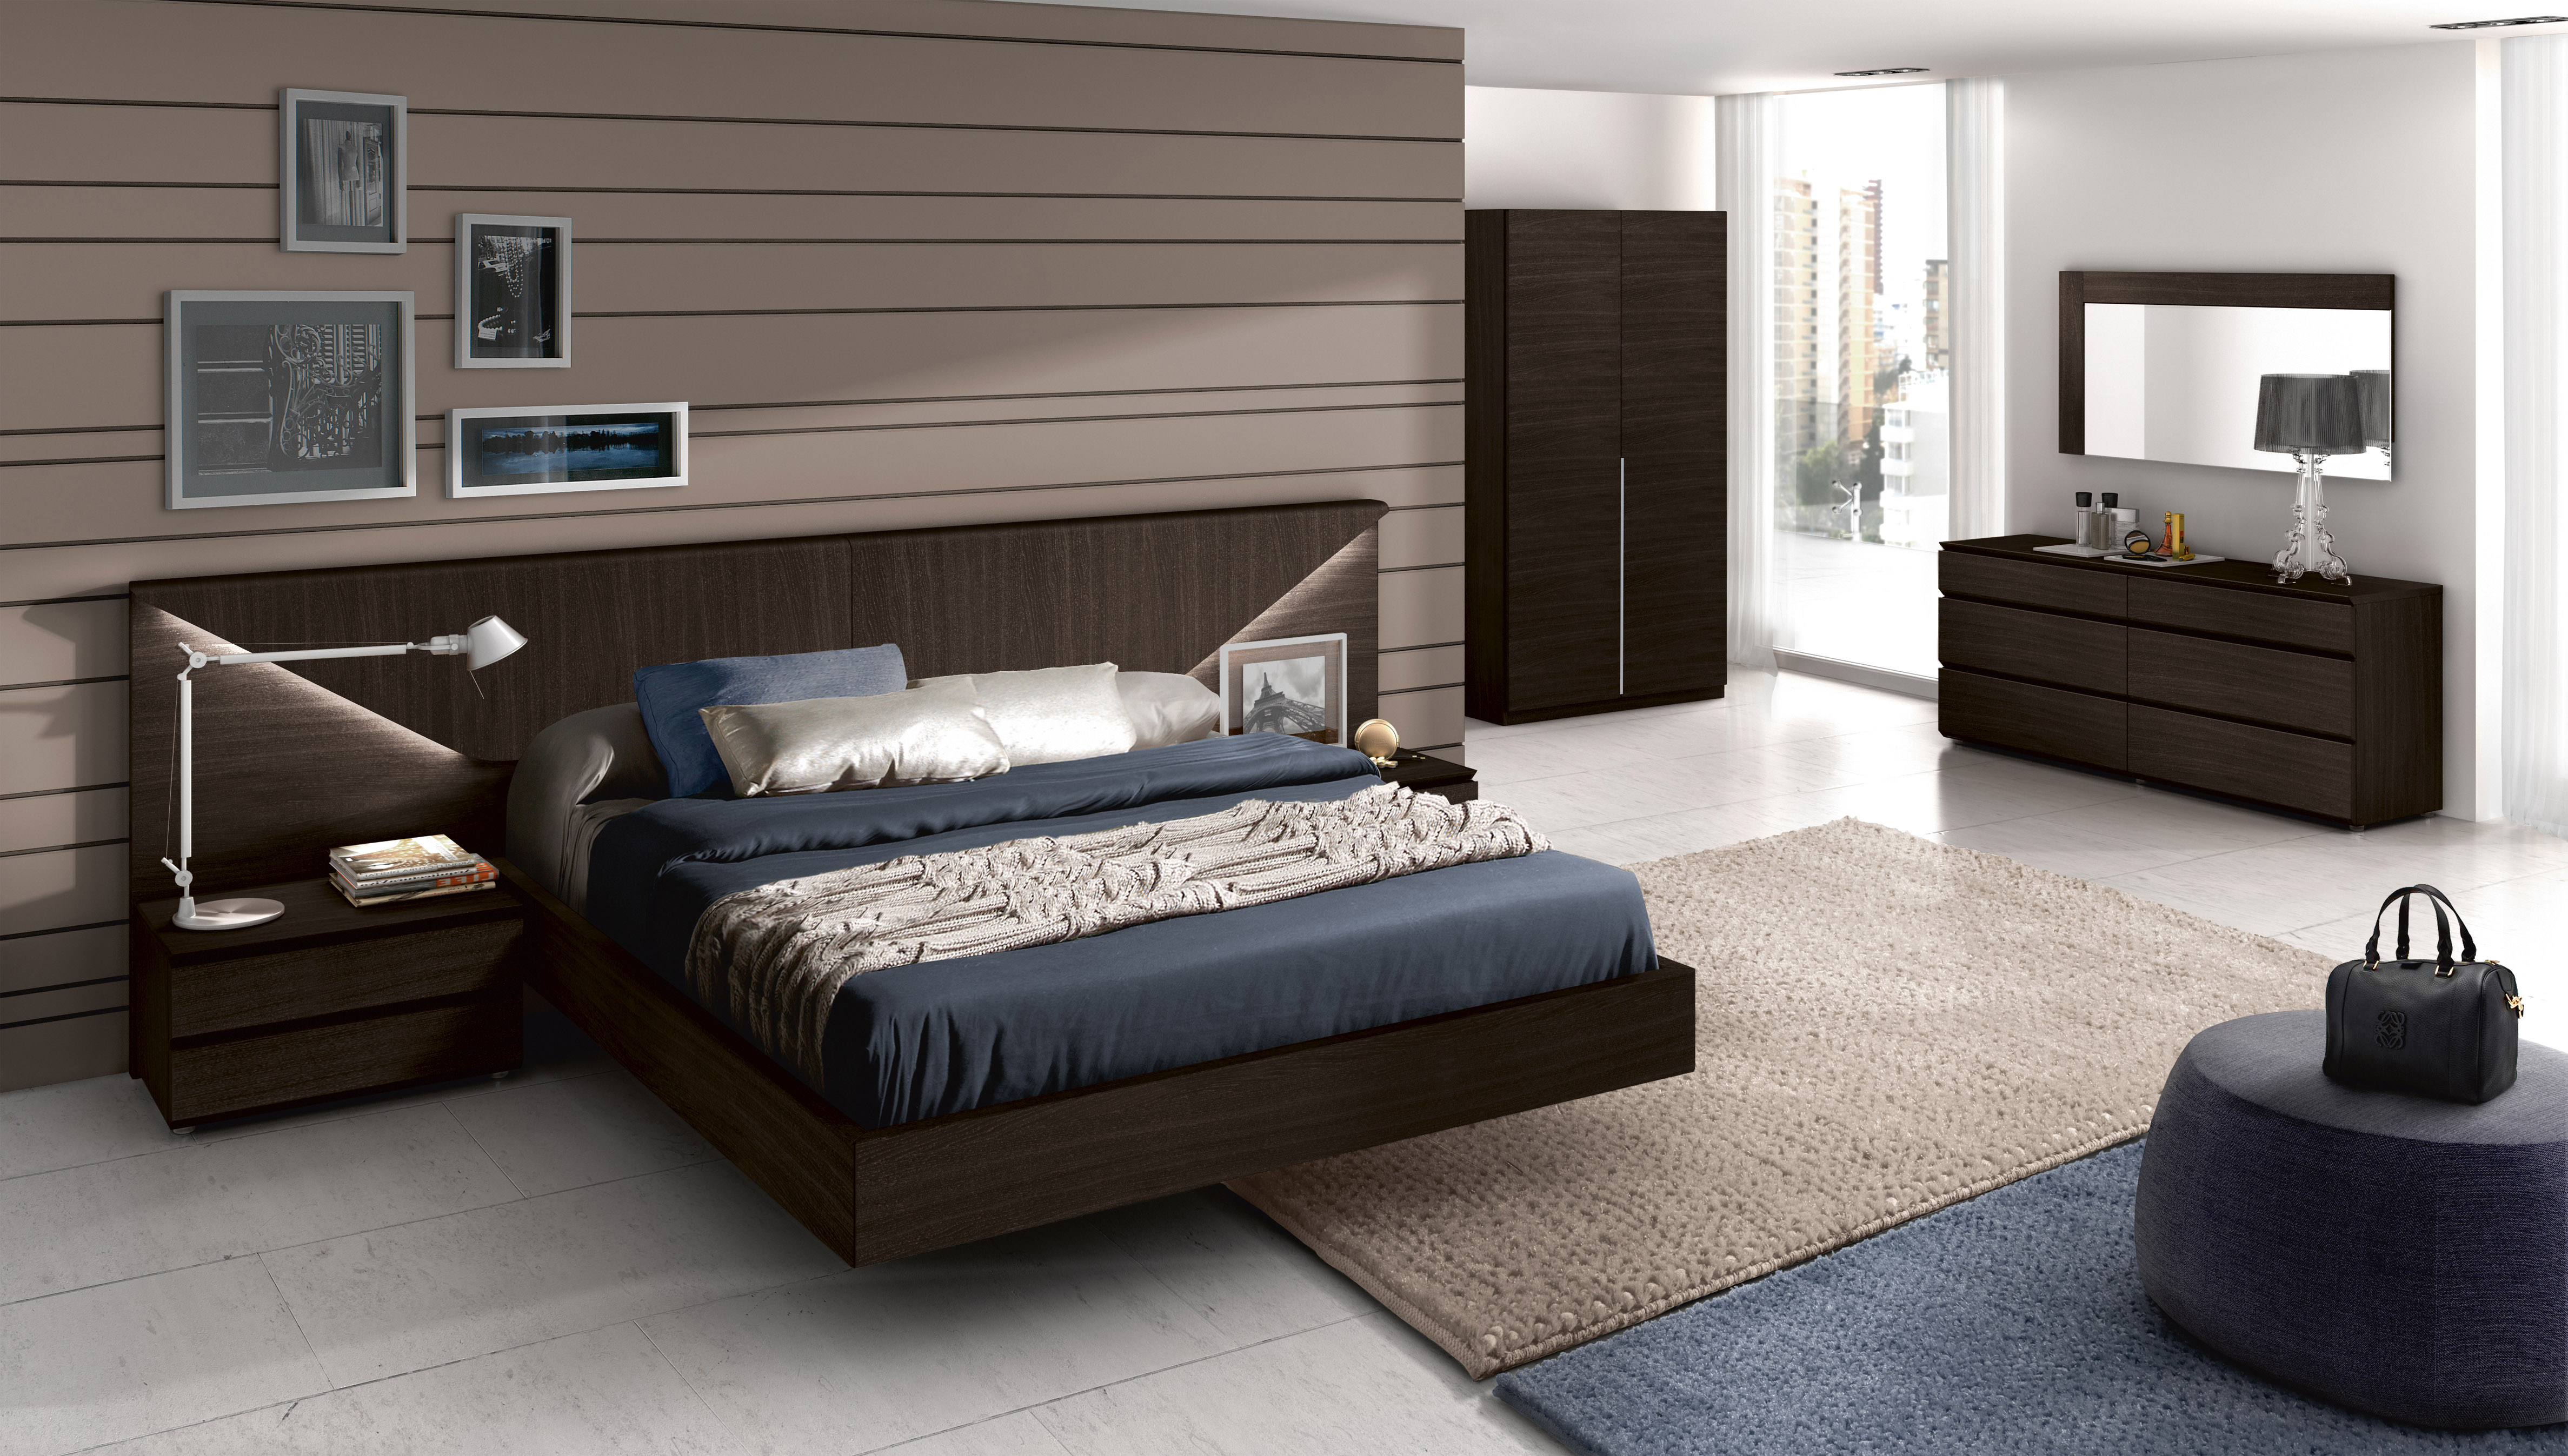 Unique Wood Luxury Bedroom Sets Paterson New Jersey GC501 Bedroom Sets Collection  Master Bedroom Furniture